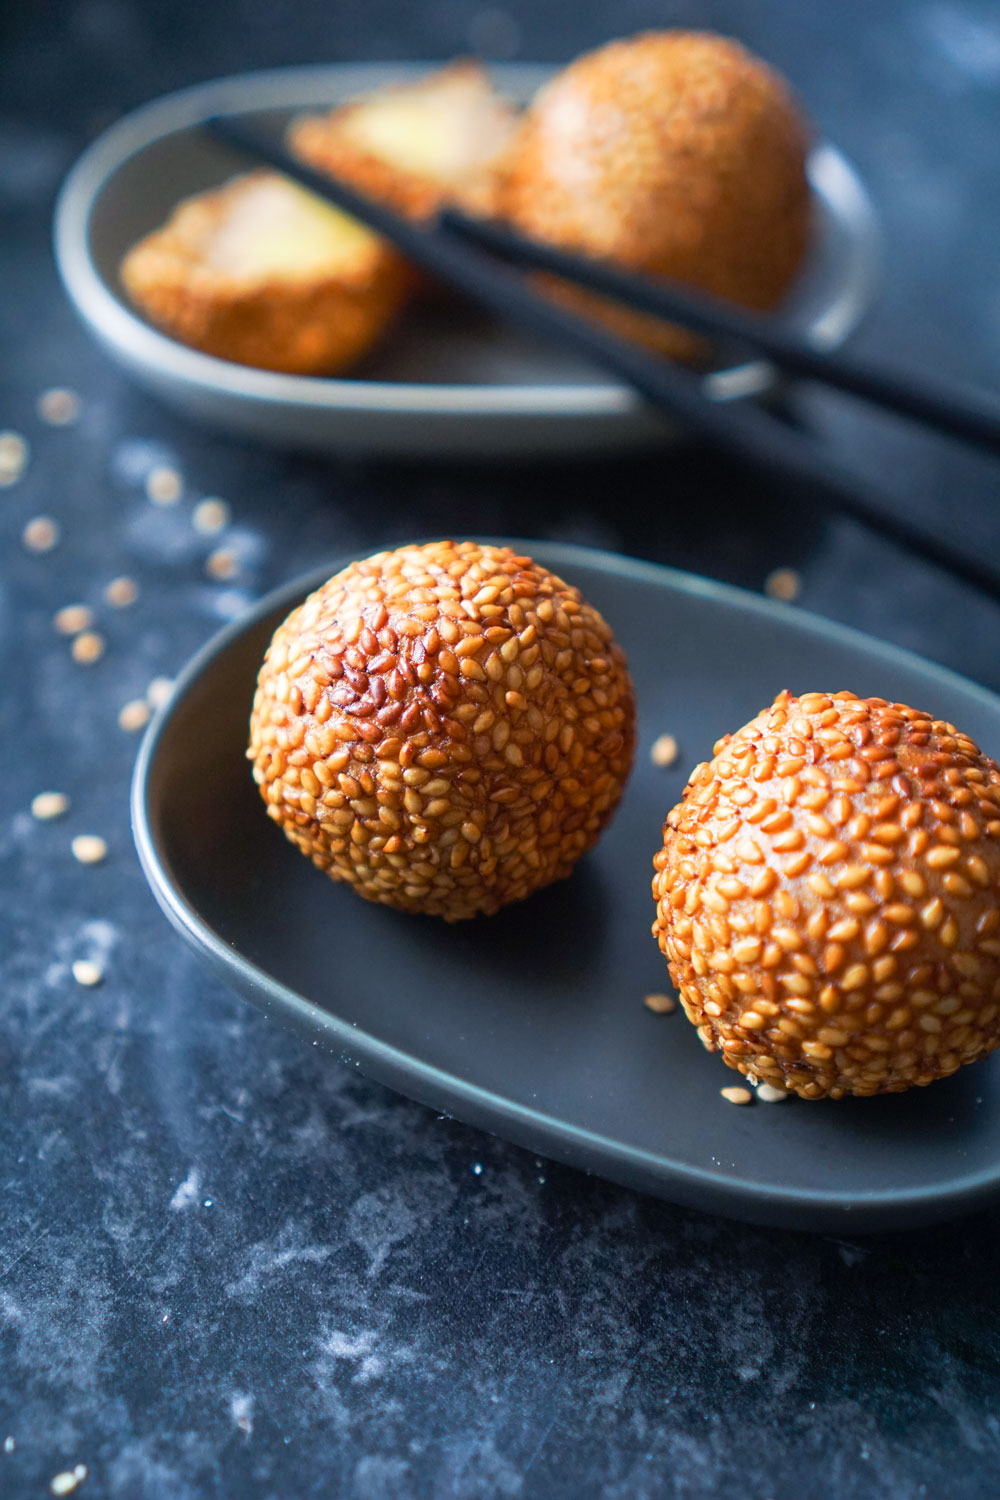 Sesame balls with mung bean filling butsi hungry for goodies sesame balls butsi is a type of fried filipino pastry made from glutinous rice flour the pastry is coated with sesame seeds on the outside and is crisp ccuart Images